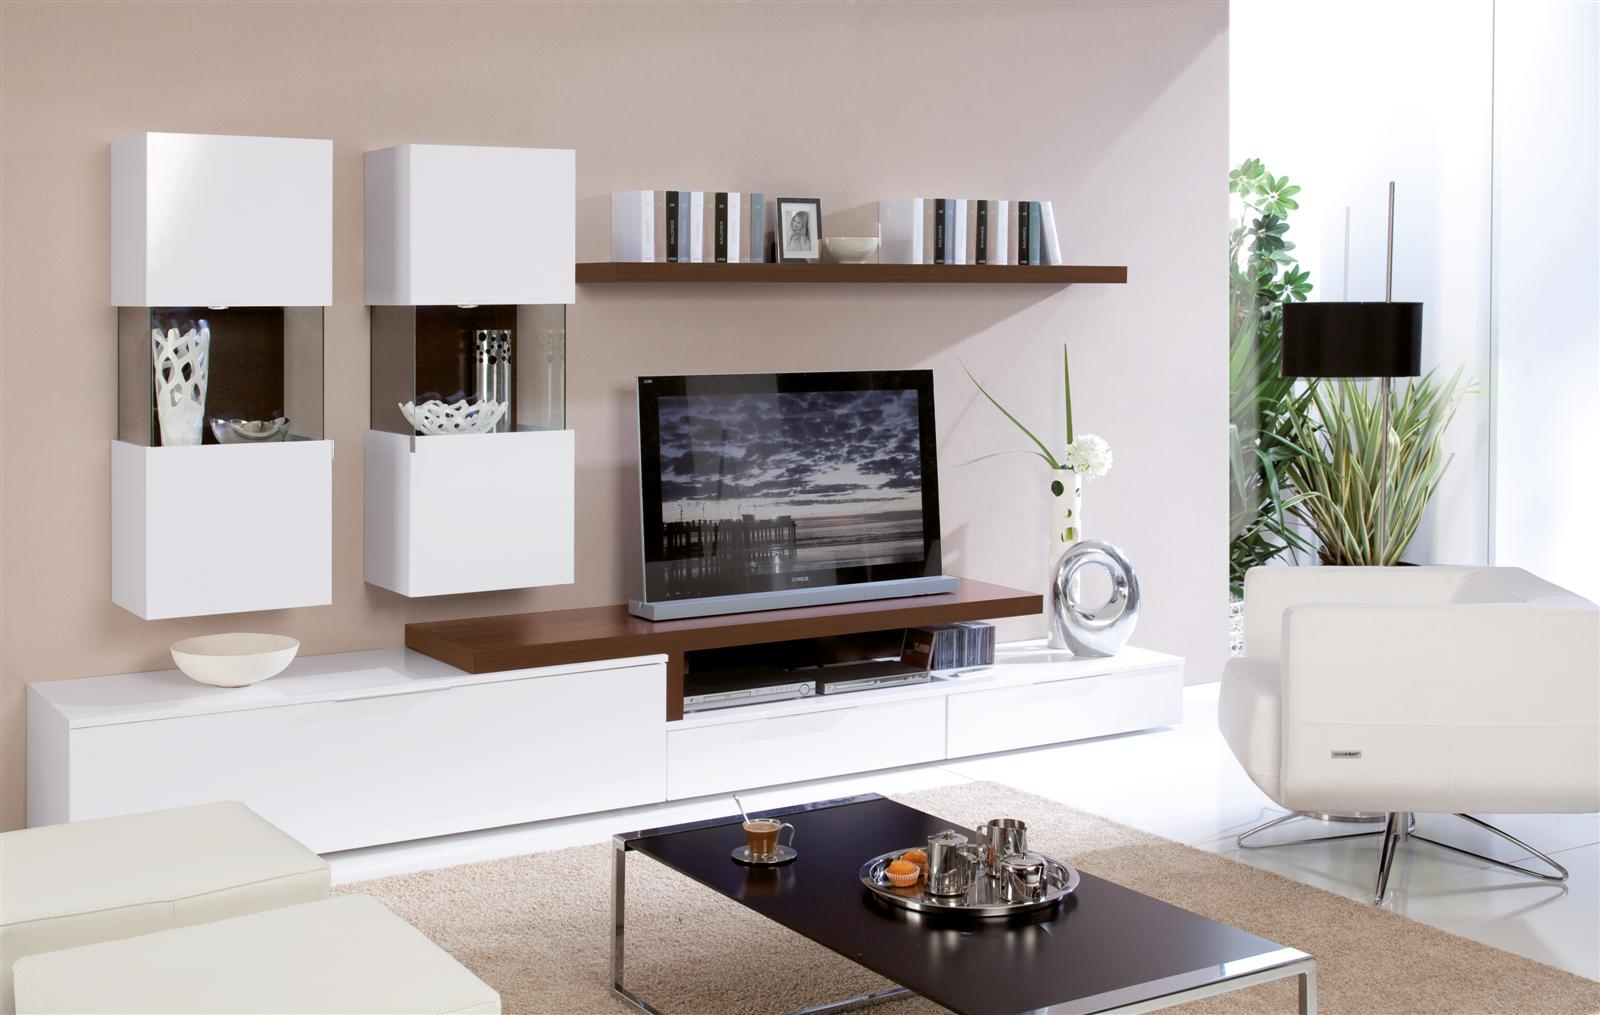 20 Modern Tv Unit Design Ideas For Bedroom & Living Room. What Colour Worktop With White Gloss Kitchen. Cool Kitchen Ideas For Small Kitchens. White Kitchen Backsplash Pictures. Rhode Island Kitchen And Bath. Small Kitchen Island With Sink. Kitchen Long Island. Ikea Kitchen Island Design. Kitchen Sitting Room Ideas